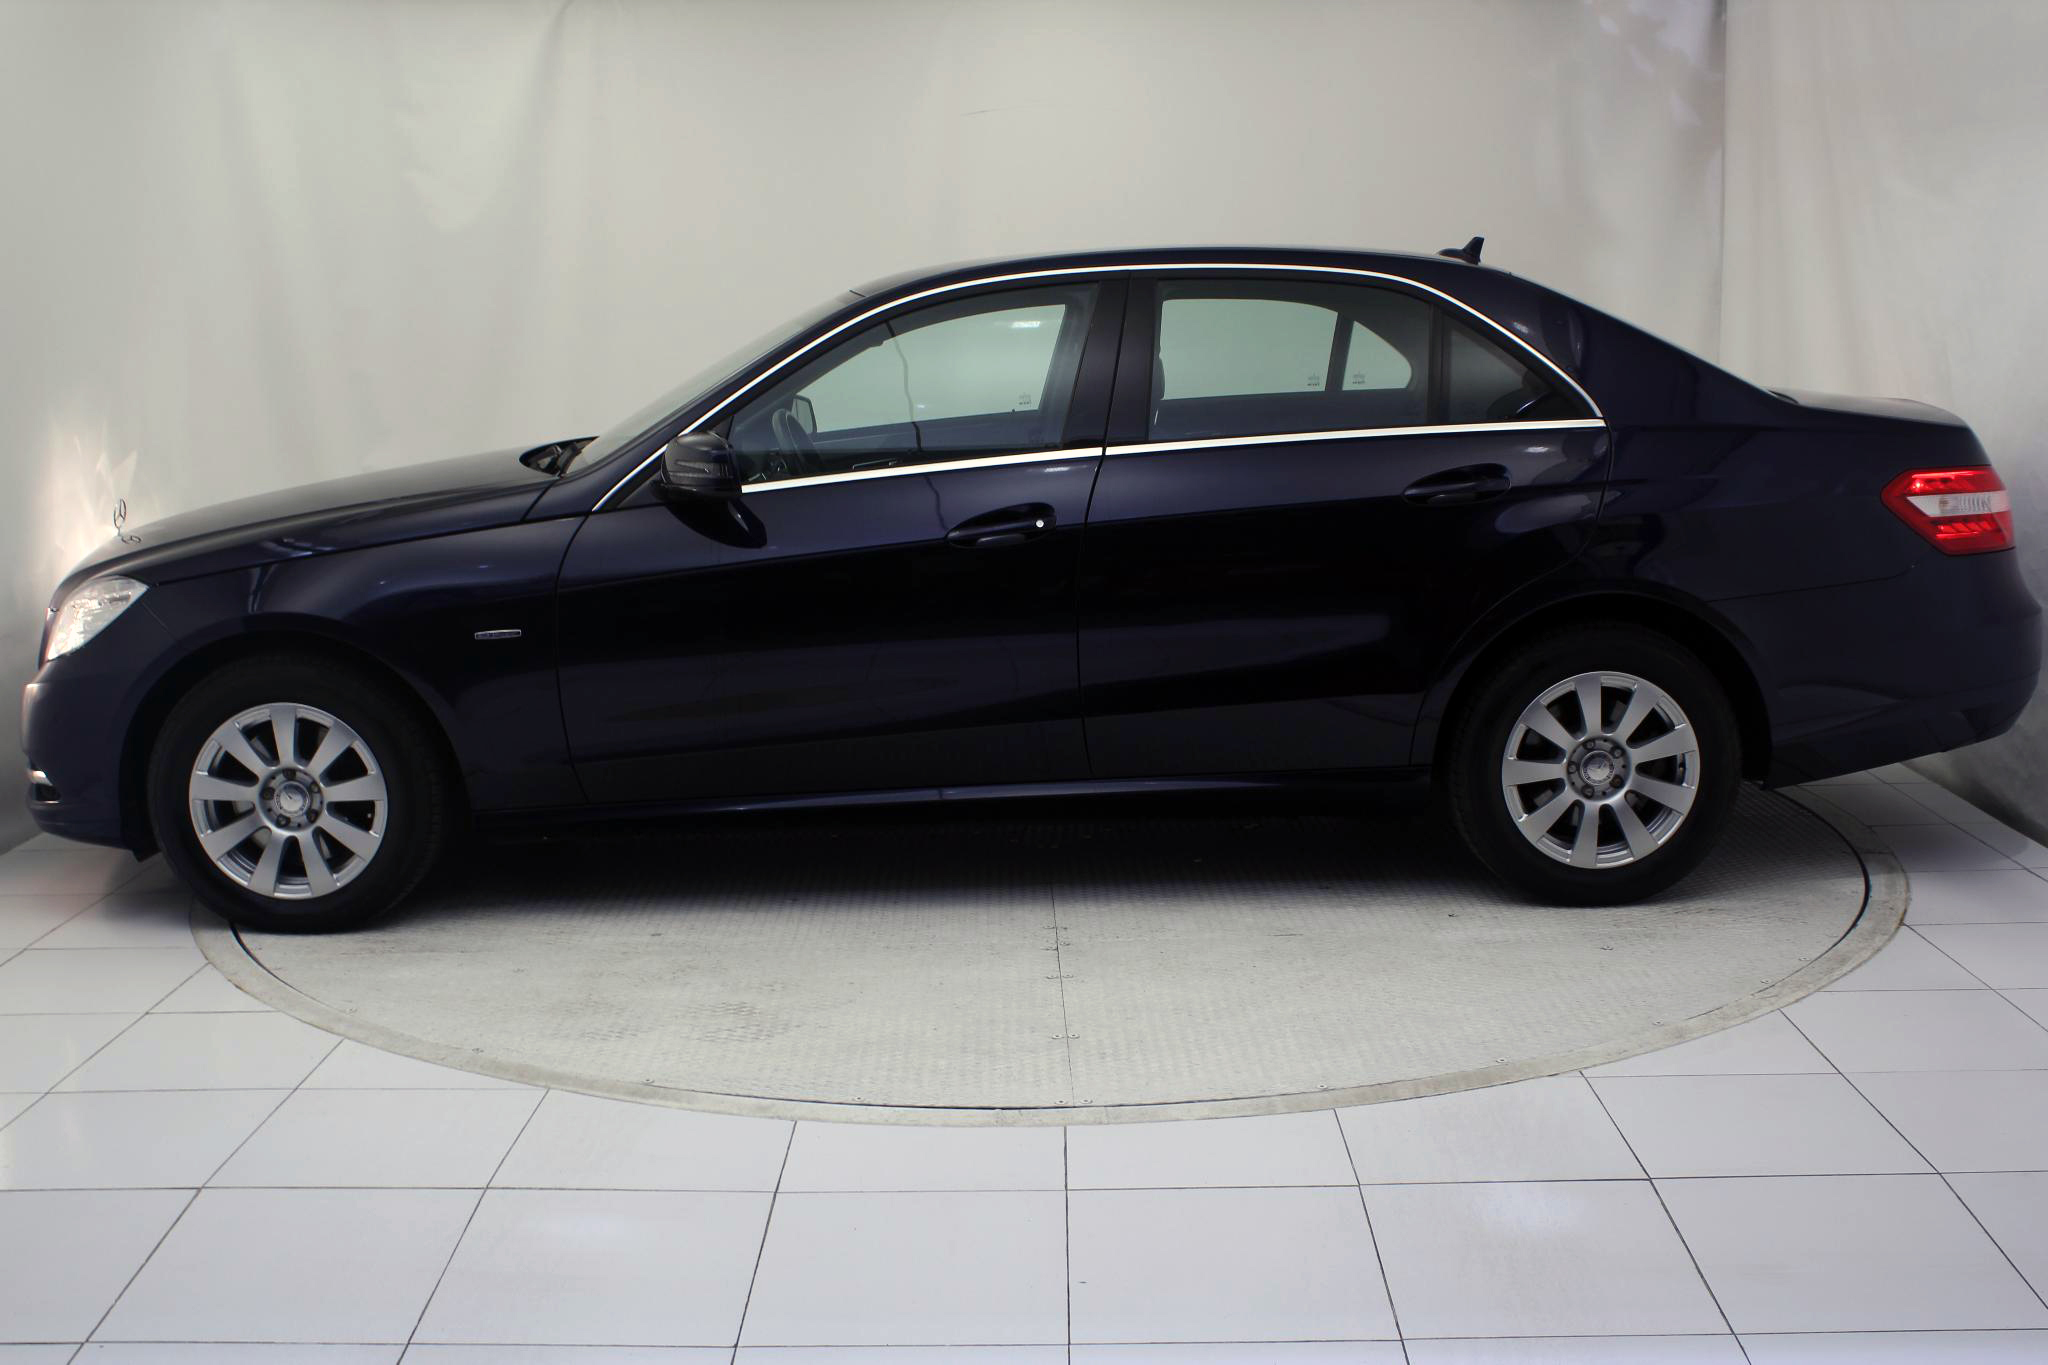 Mercedes-Benz Clase E CLASE E 250 CDI BLUE EFFICIENCY AUTO imagen 8